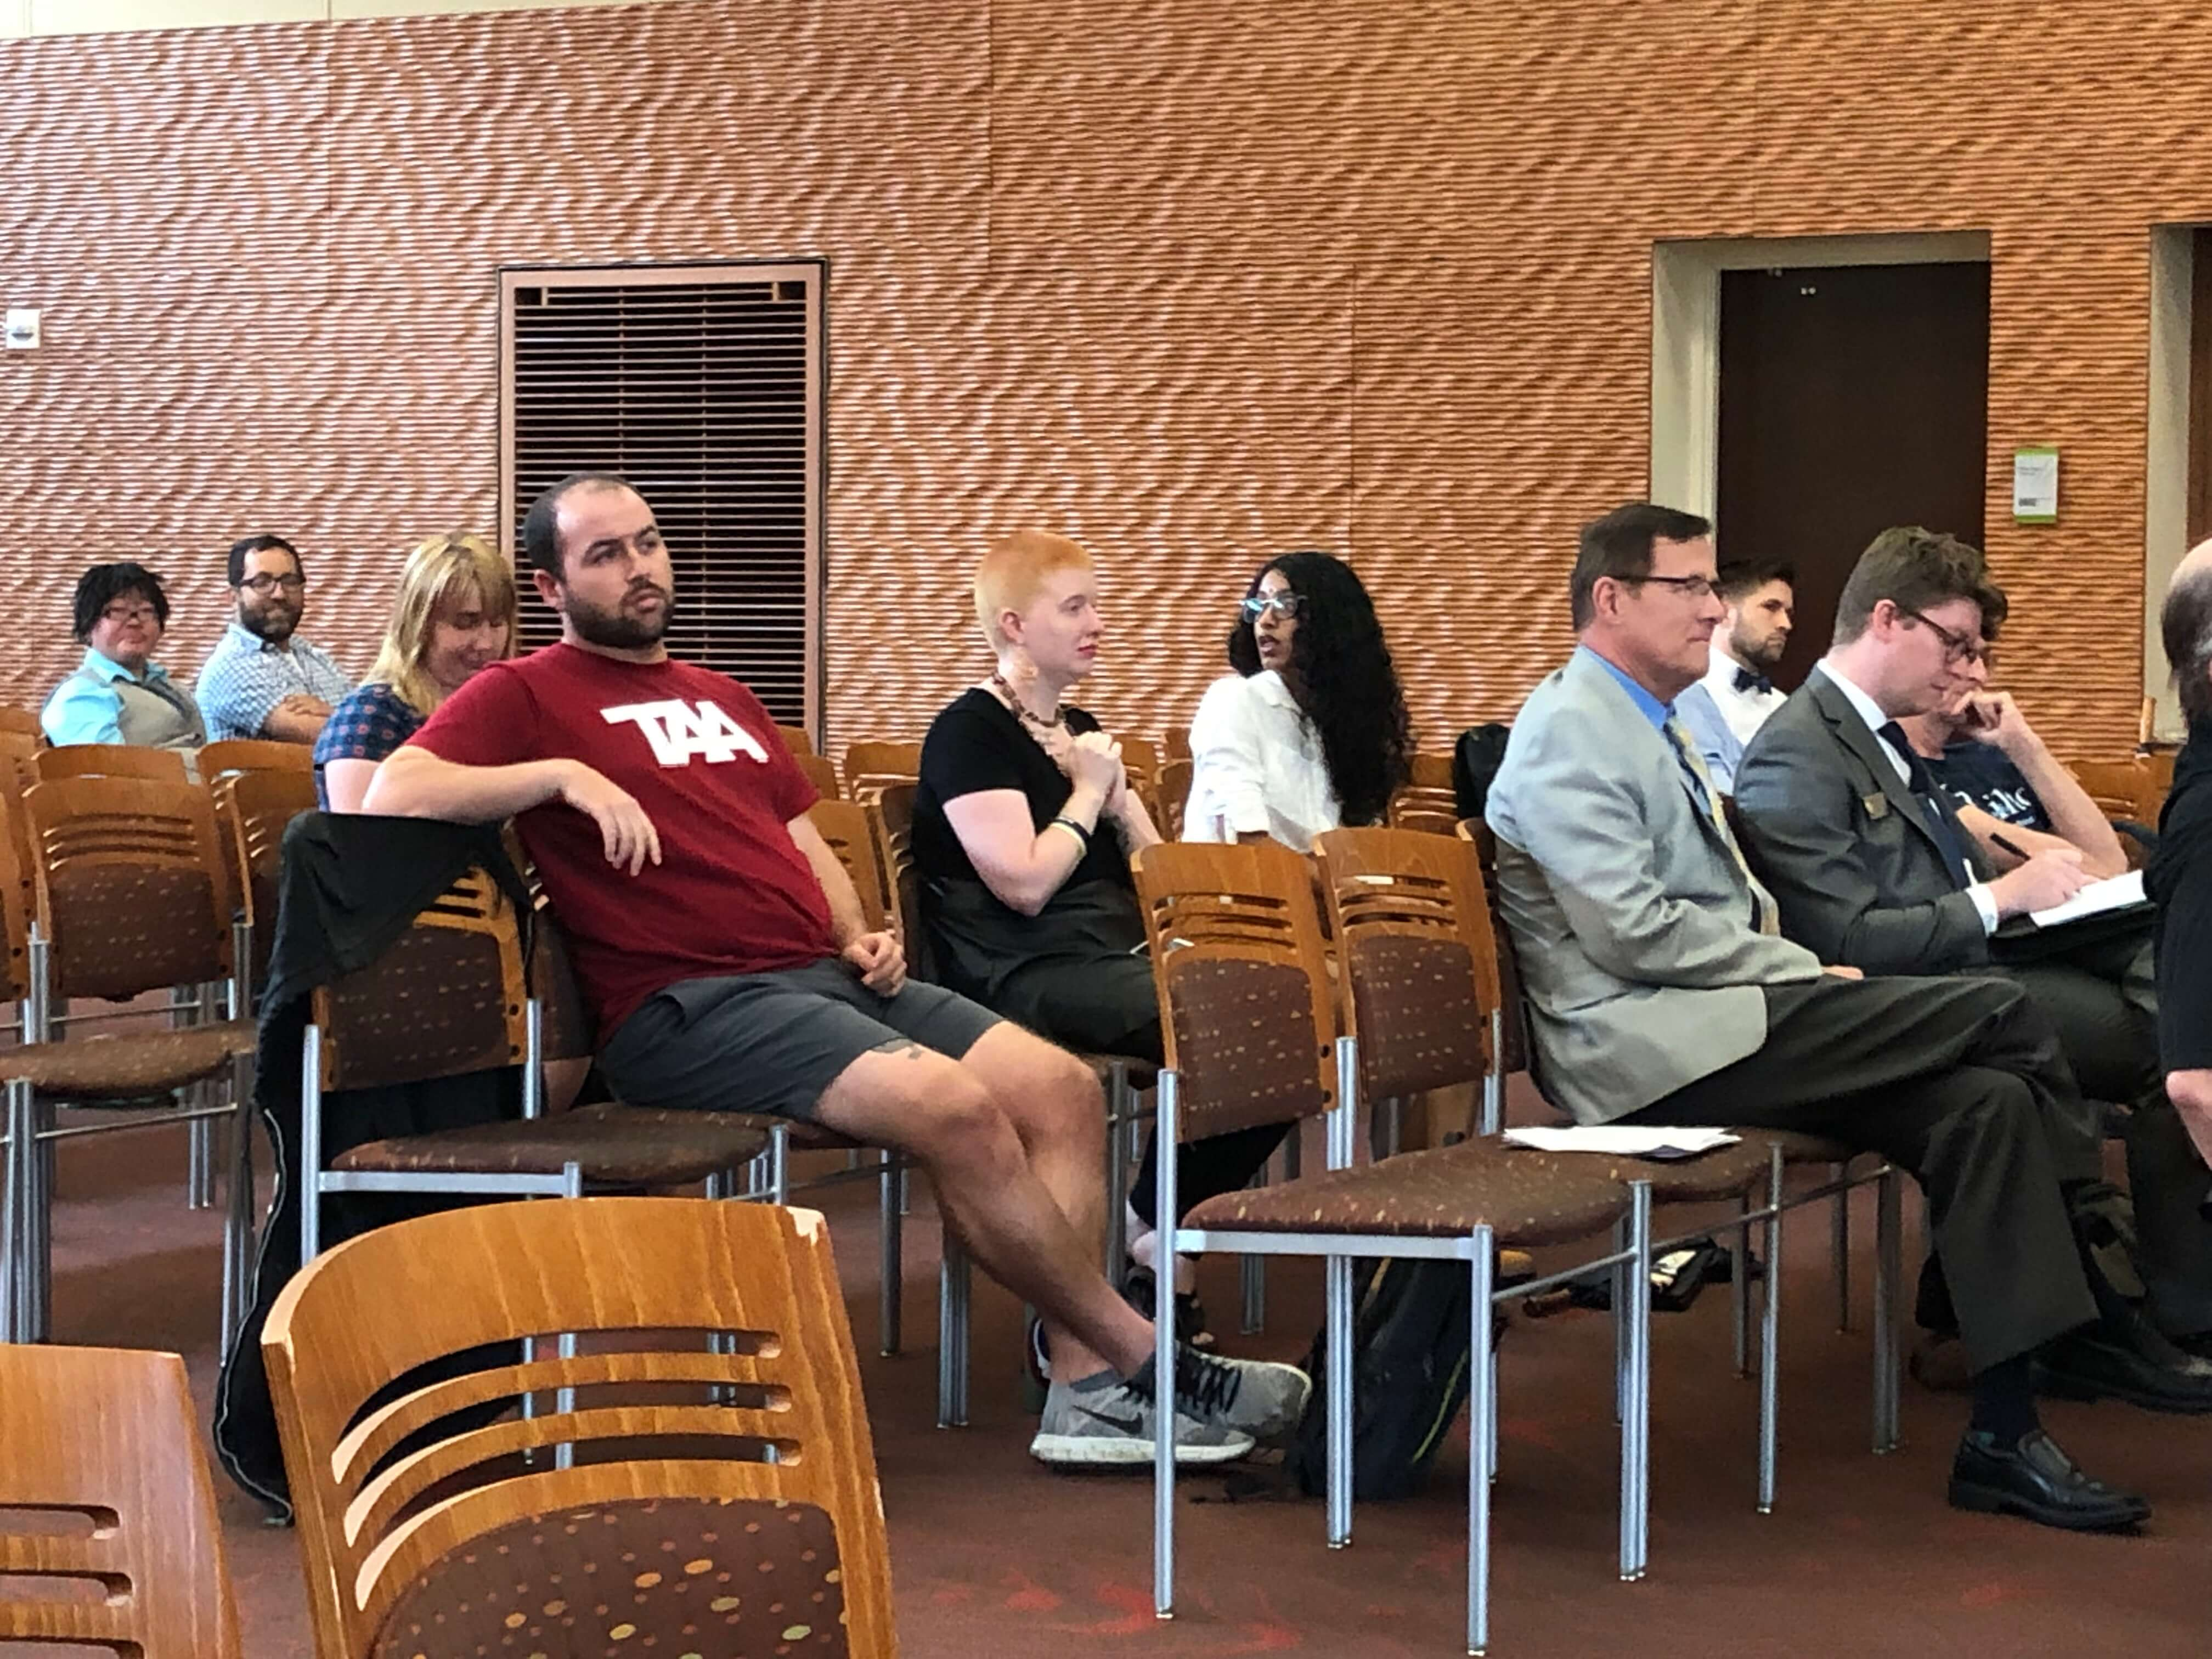 Speakers, including professors and graduate students, wait to address creating a rule that prescribes penalties up to expulsion for students who disrupt campus speakers. Photo courtesy of the Wisconsin Examiner.